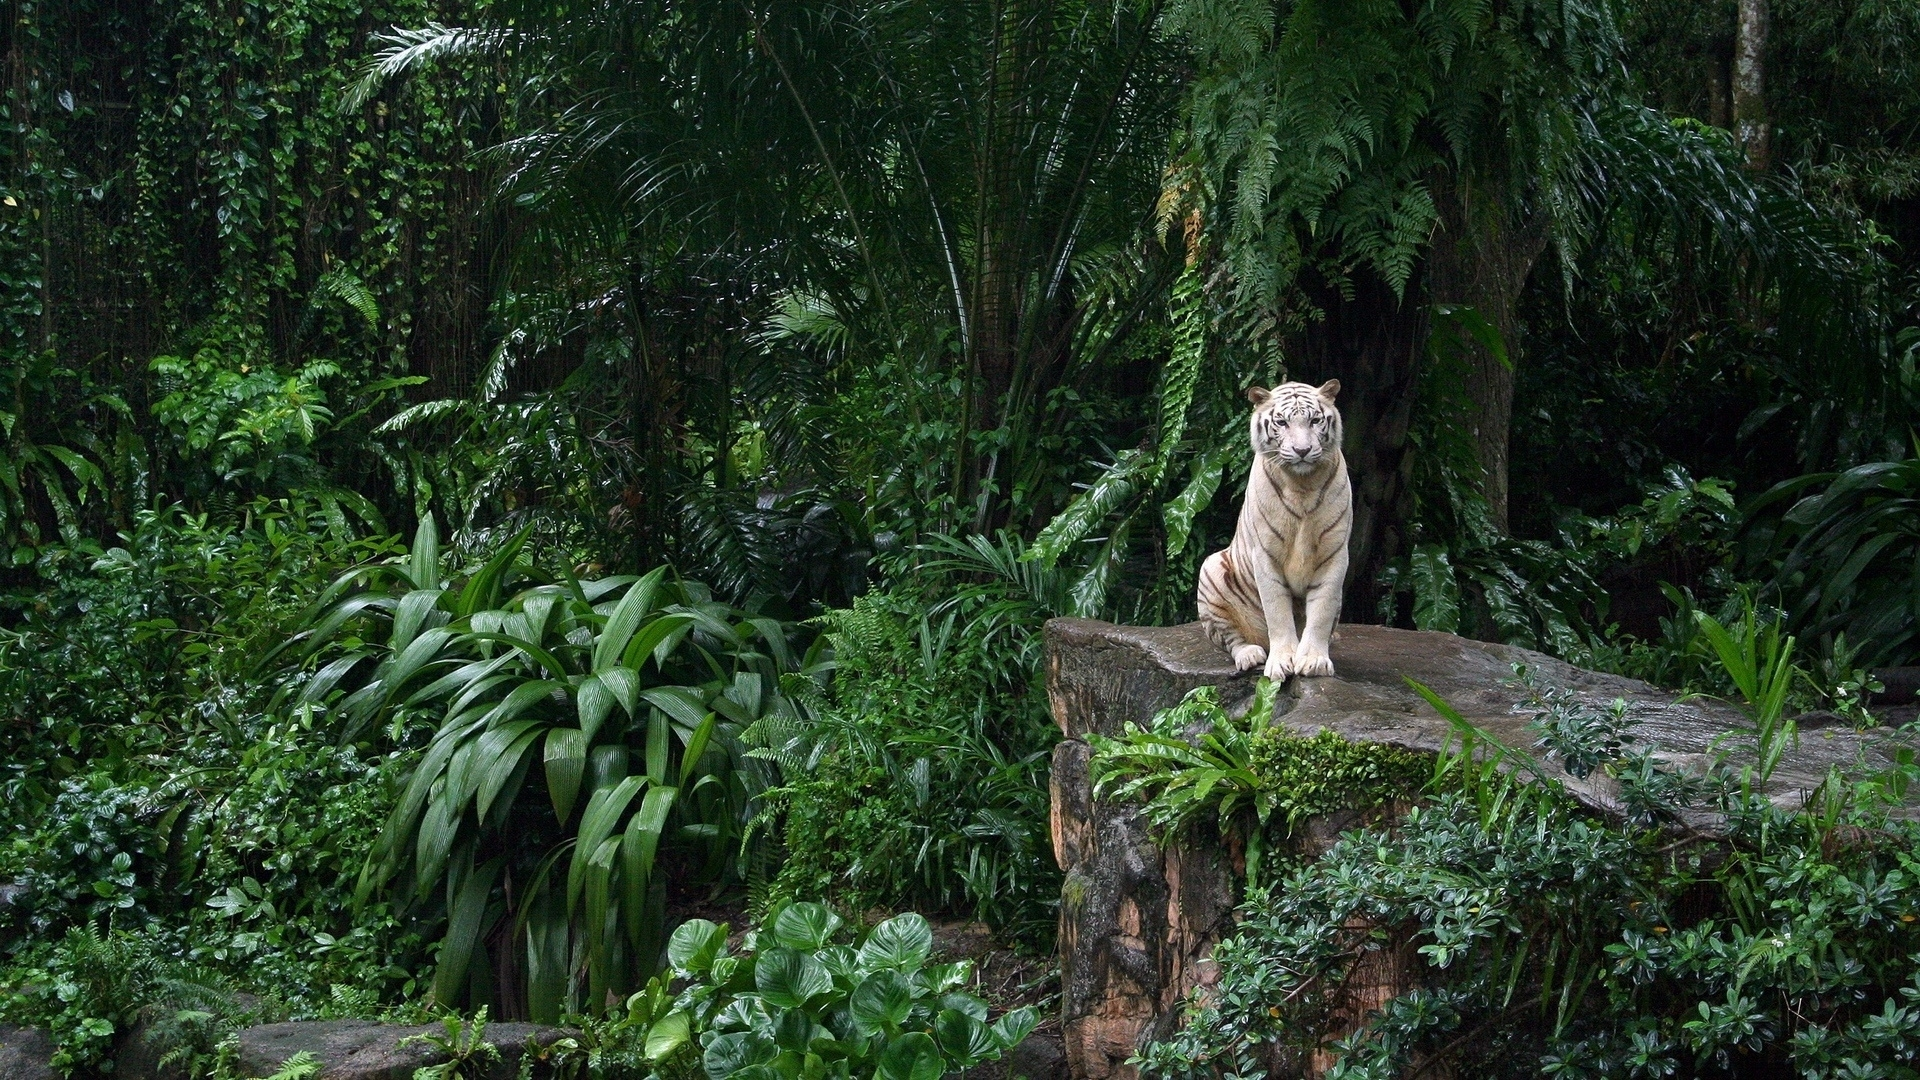 47836 download wallpaper Animals, Tigers screensavers and pictures for free